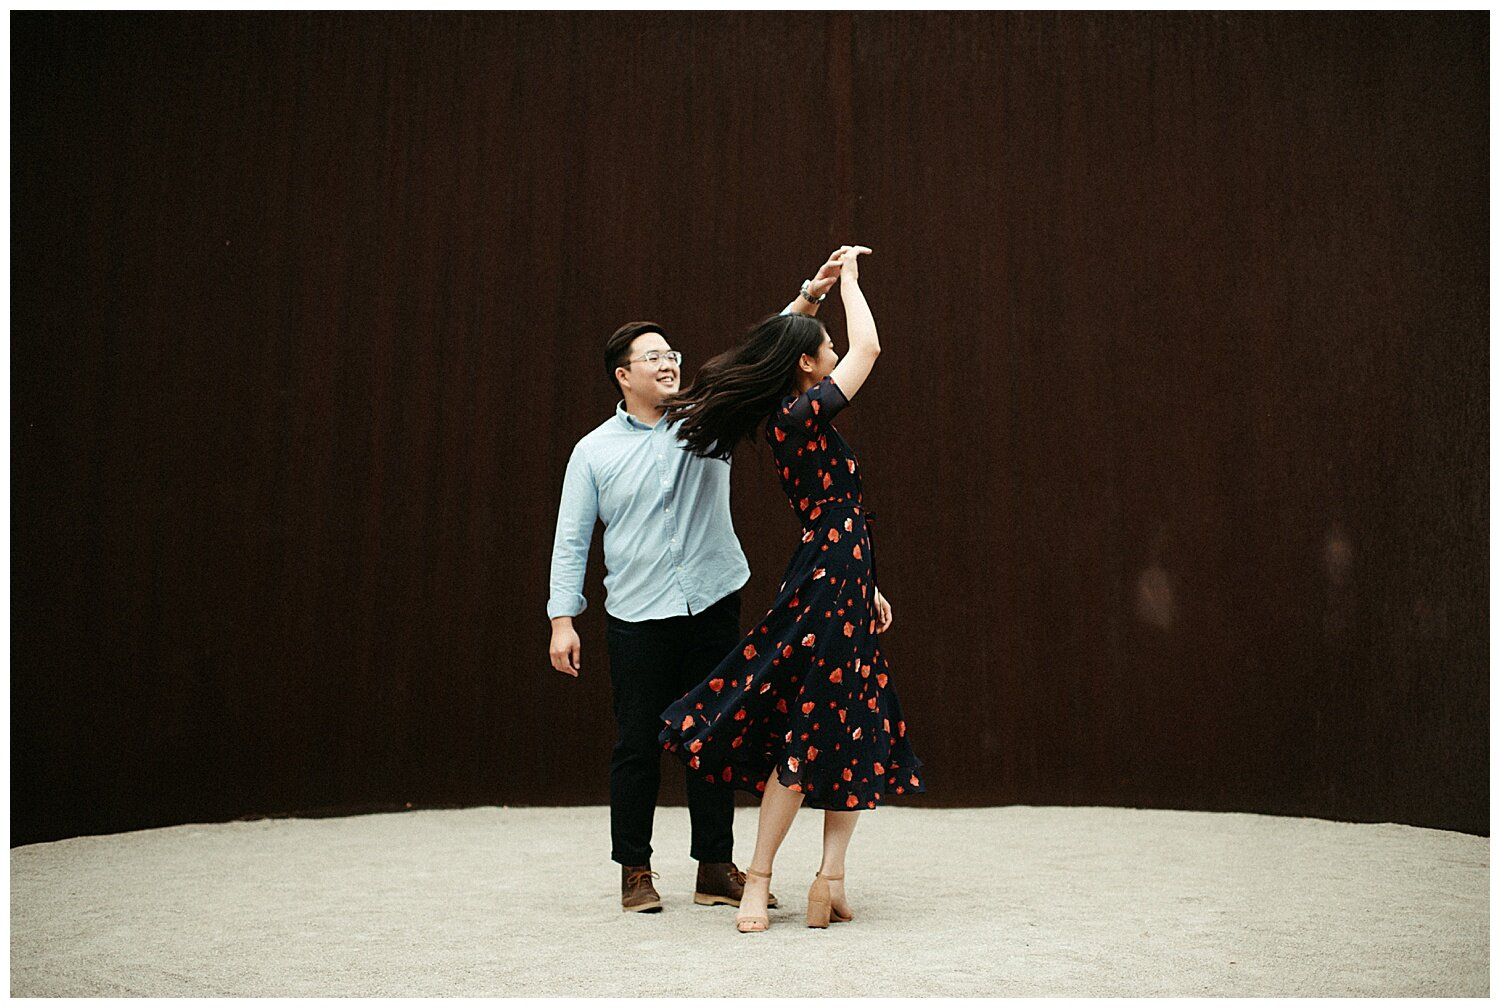 Contemporary Art Museum St Louis Engagement - Zach and Rosalie Wedding Photography - St Louis Wedding Photography_0030.jpg